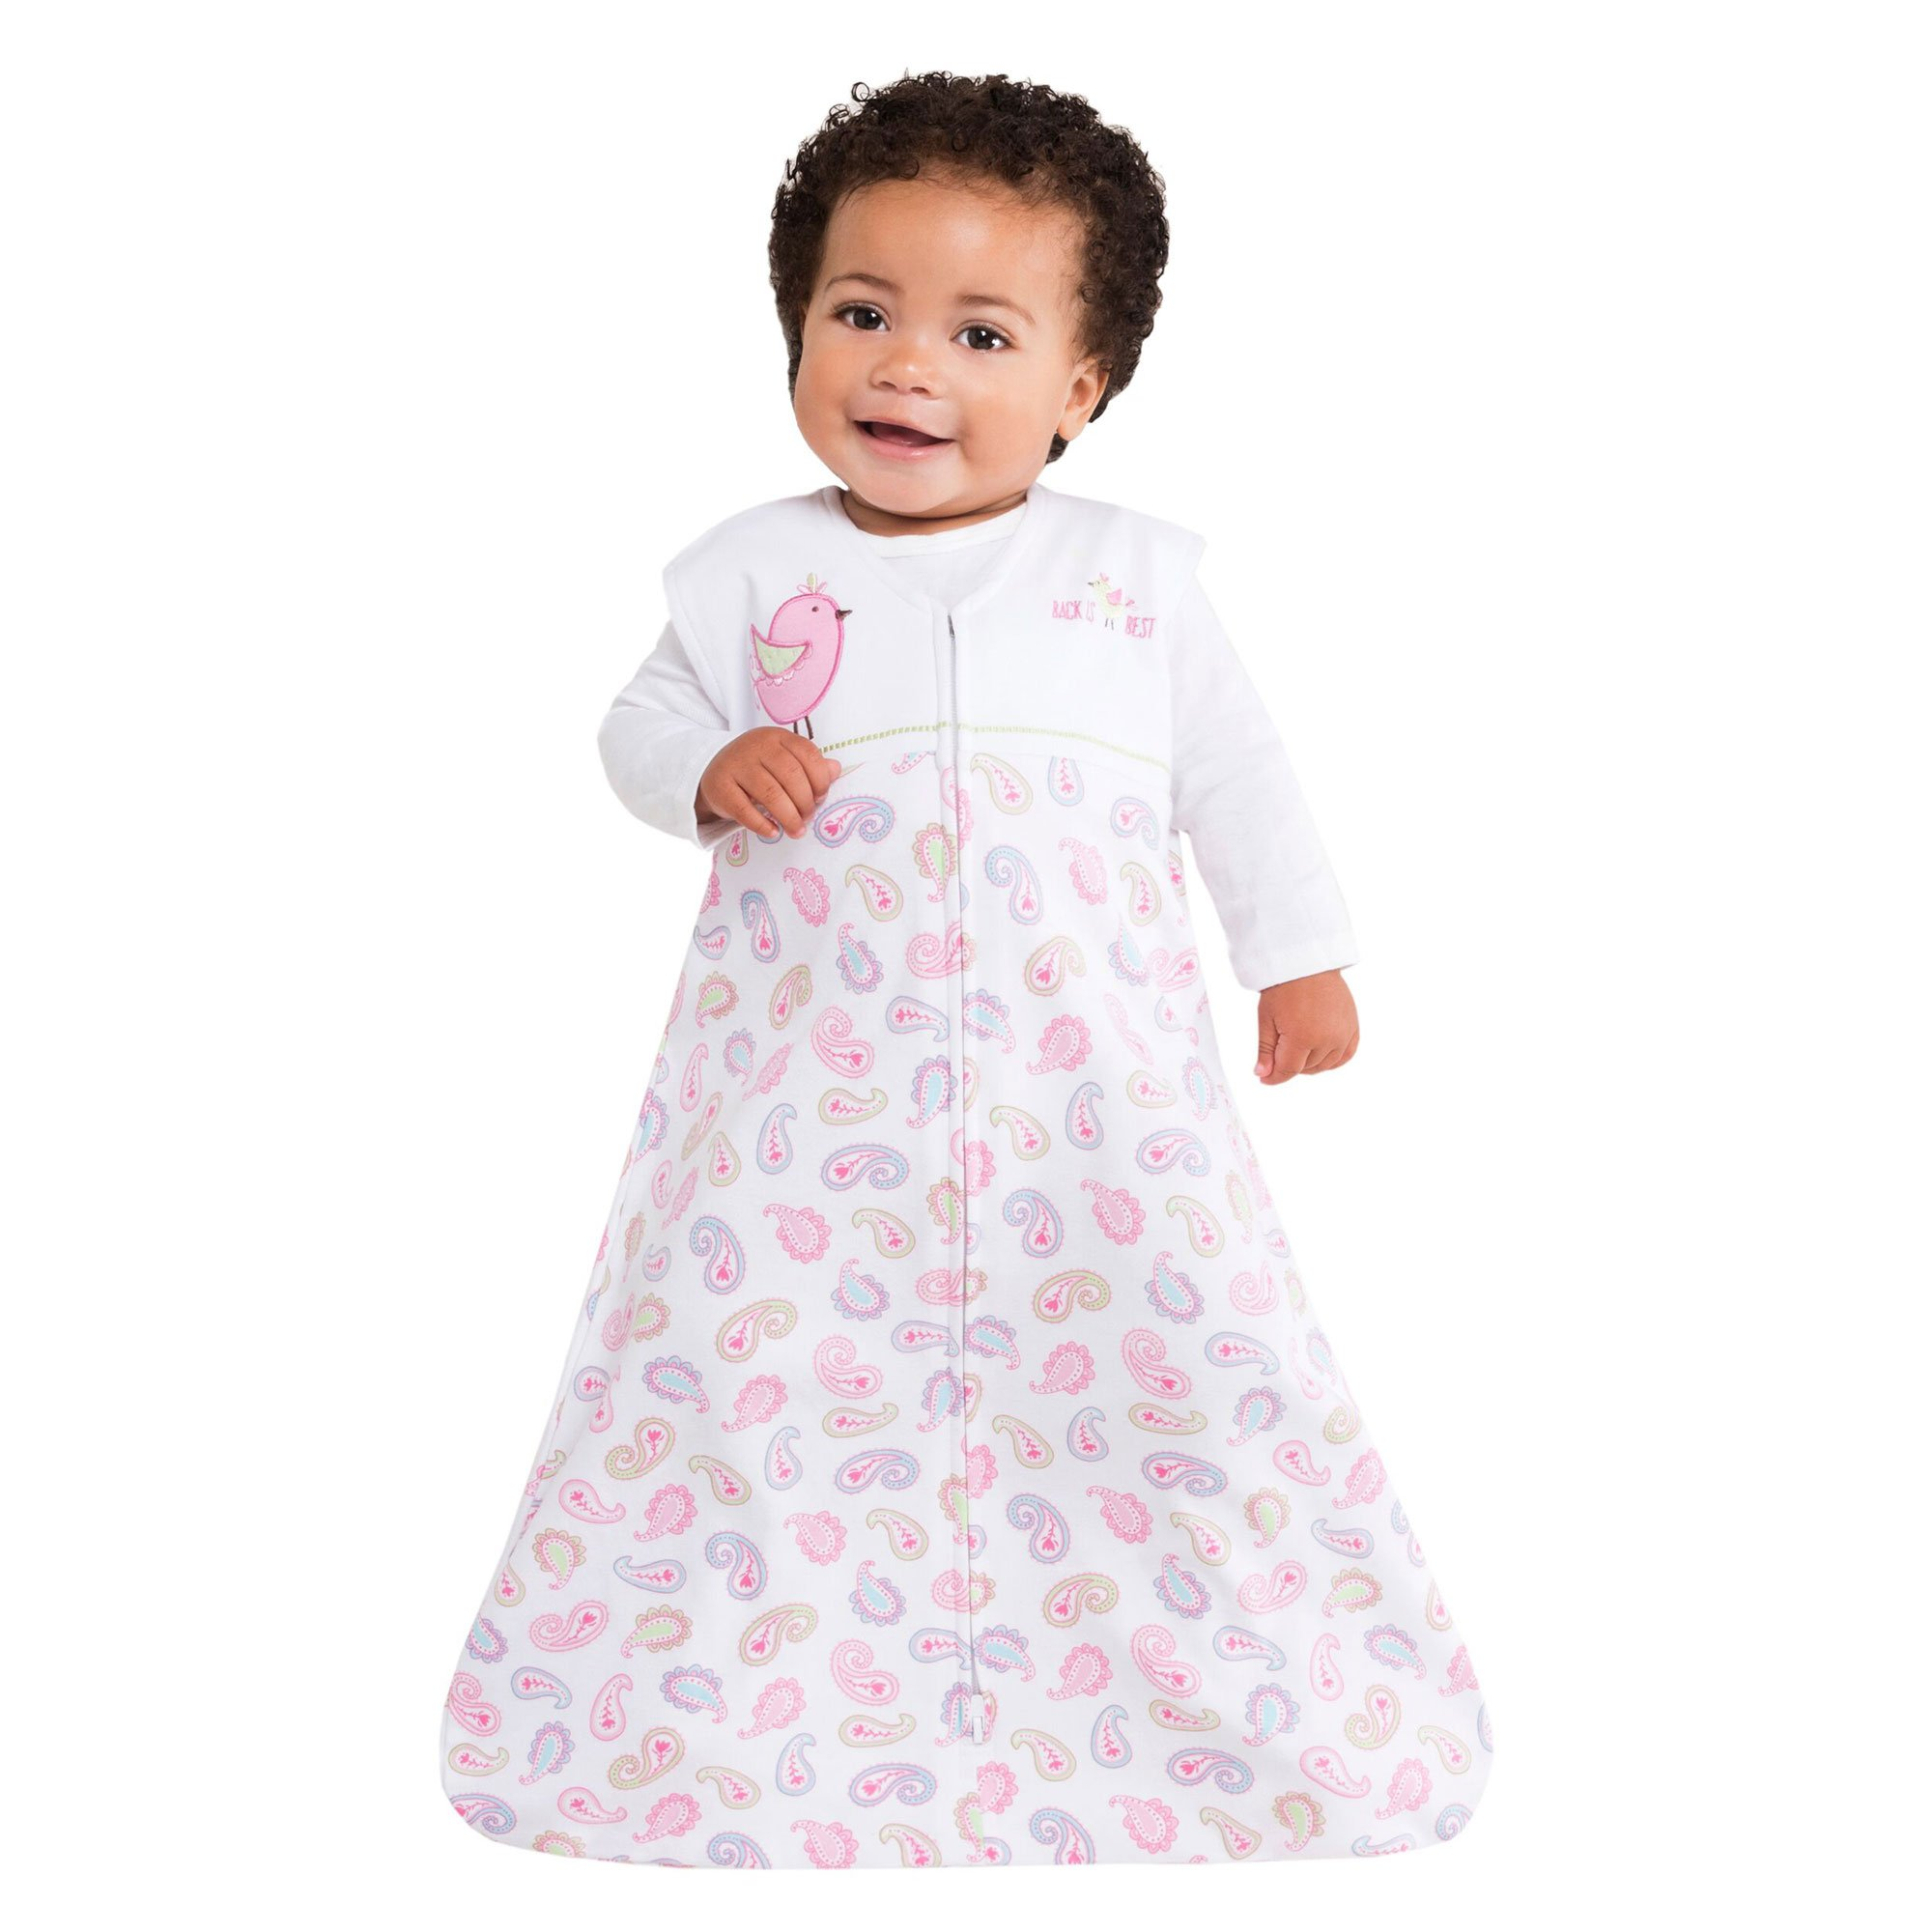 HALO Sleepsack 100% Cotton Wearable Blanket, Pink Pretty Paisley, Small by Halo (Image #2)